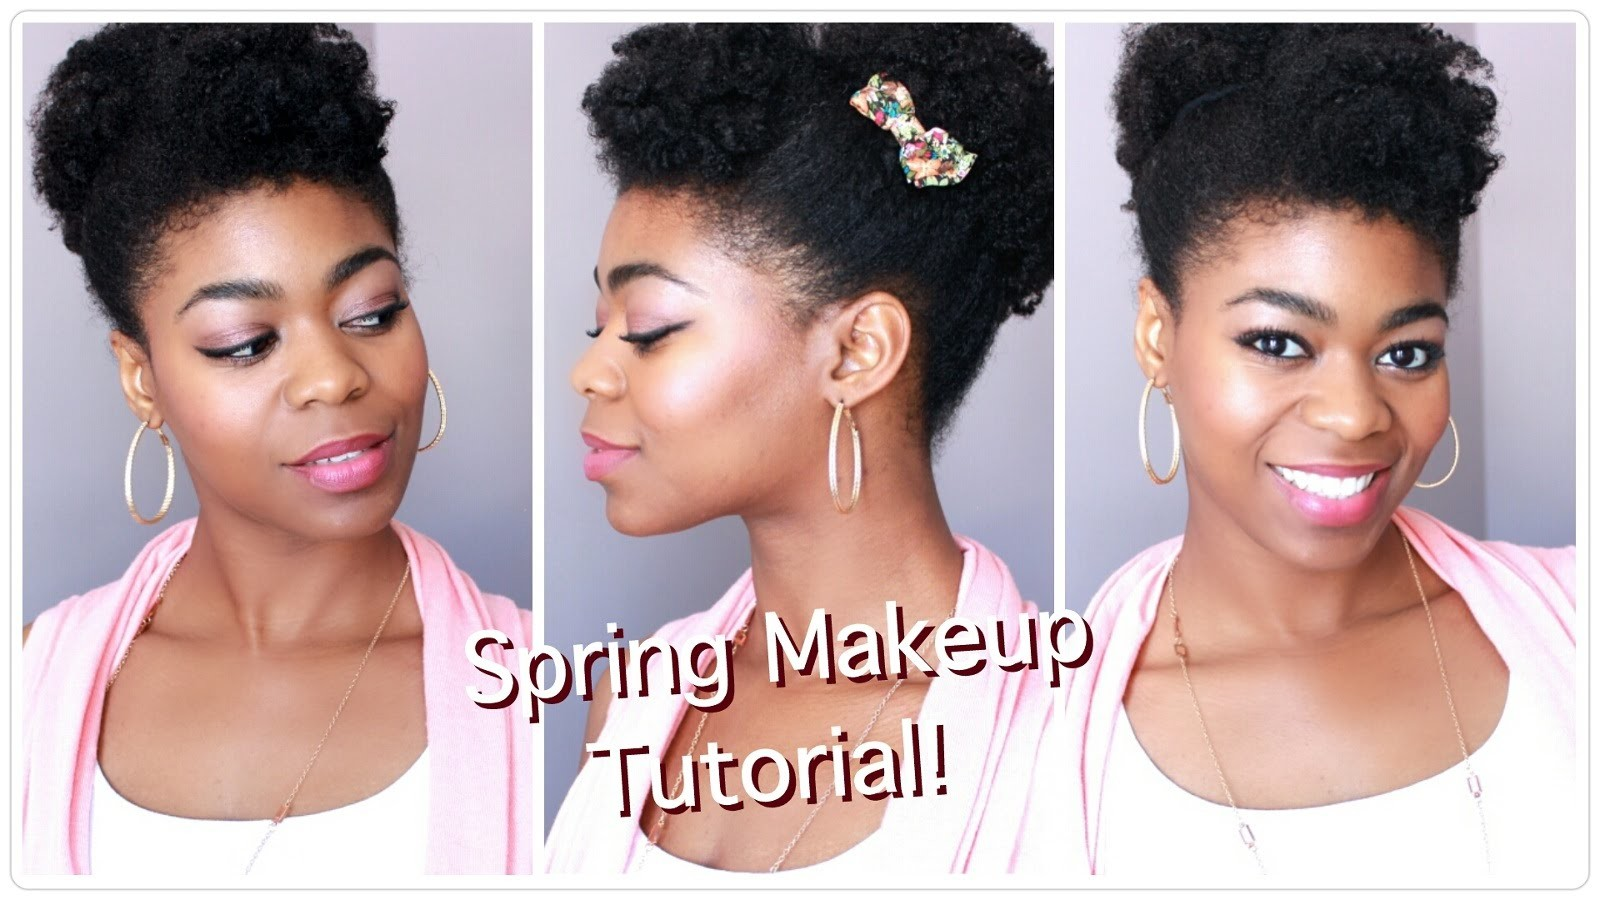 Spring Makeup Tutorial - 2015 Vlogger Easter Collab! - Makeup For Beginners - 4C Natural Hair